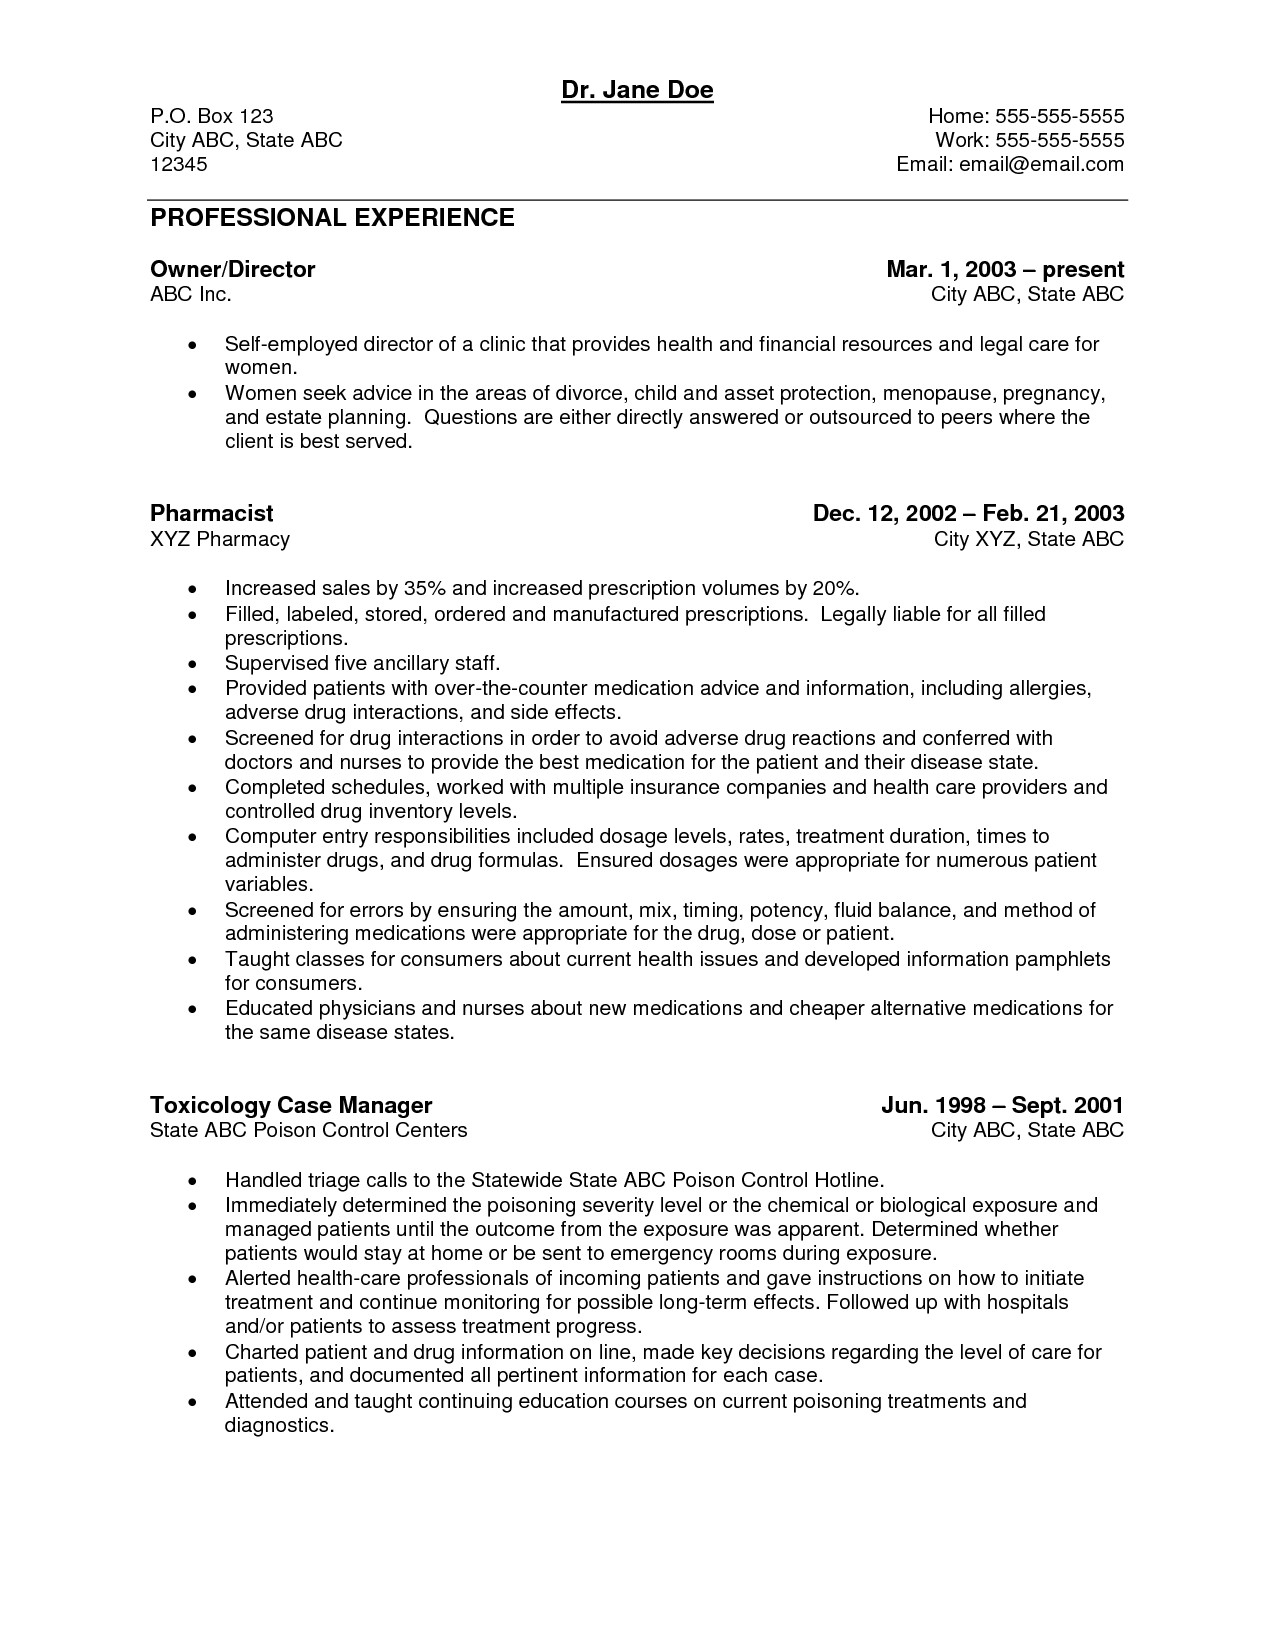 Medical Office Manager Resume Example - Medical Fice Manager Resume Examples Best Management Resume